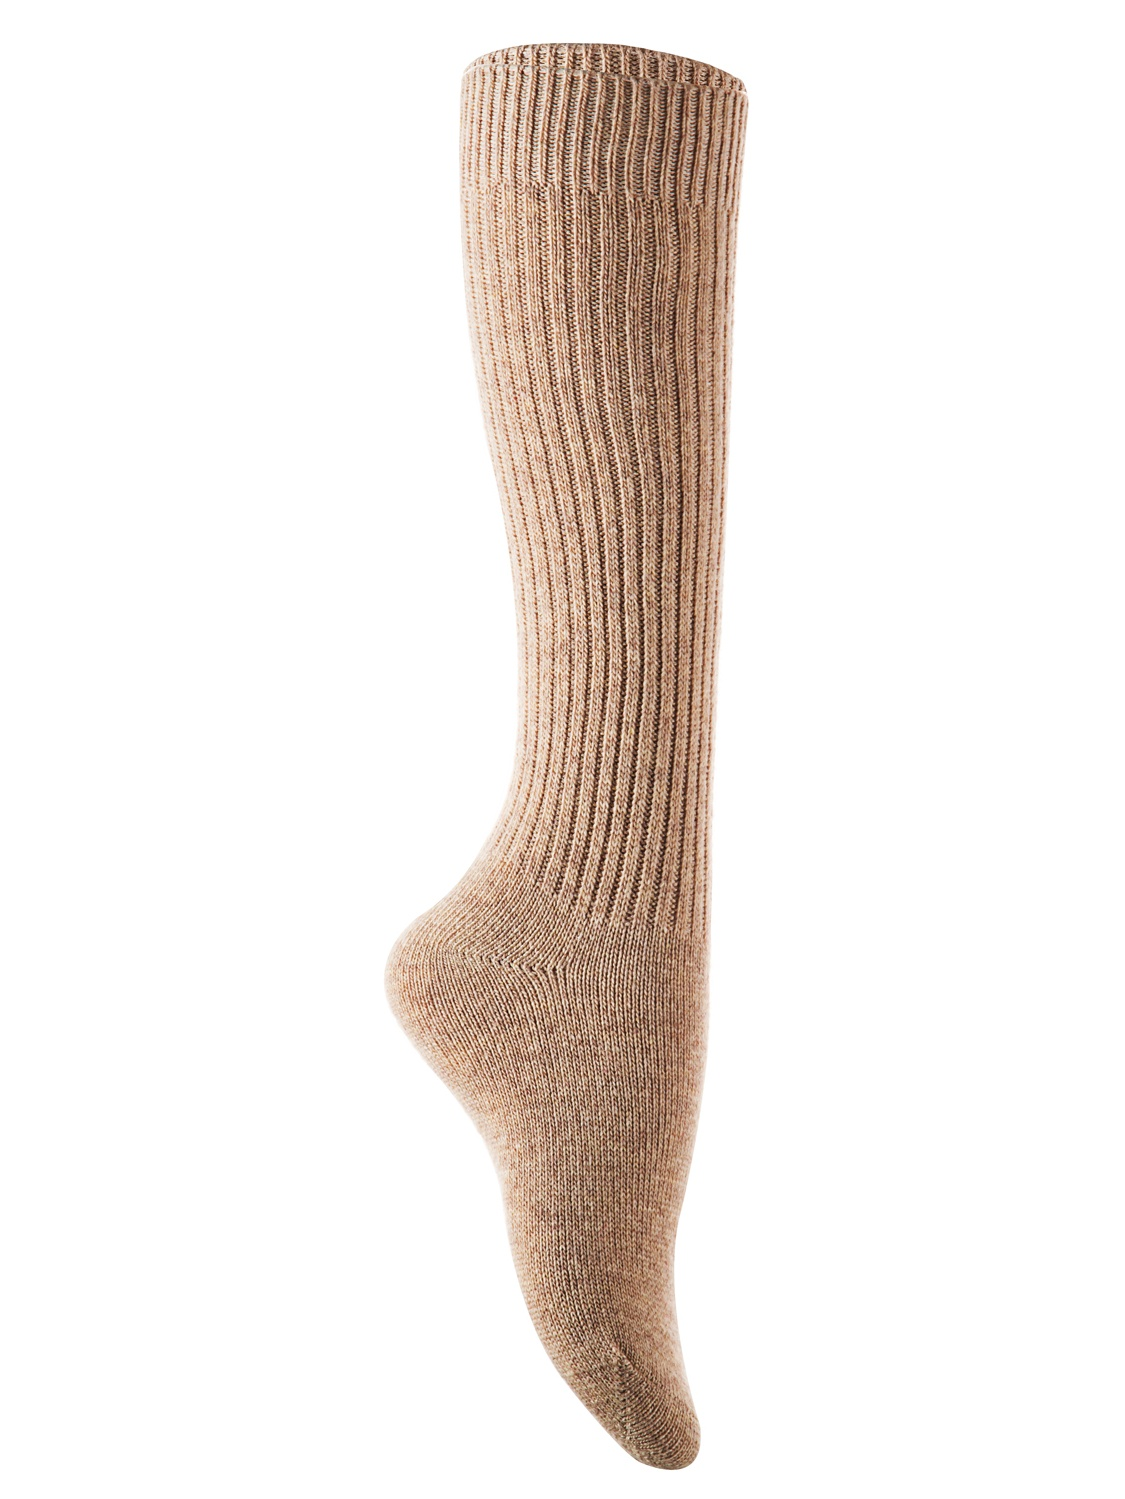 Lian Style Big Girl's 1 Pair Knee-high Knitted Wool Socks Stripped FS05 Size L/XL(Beige)